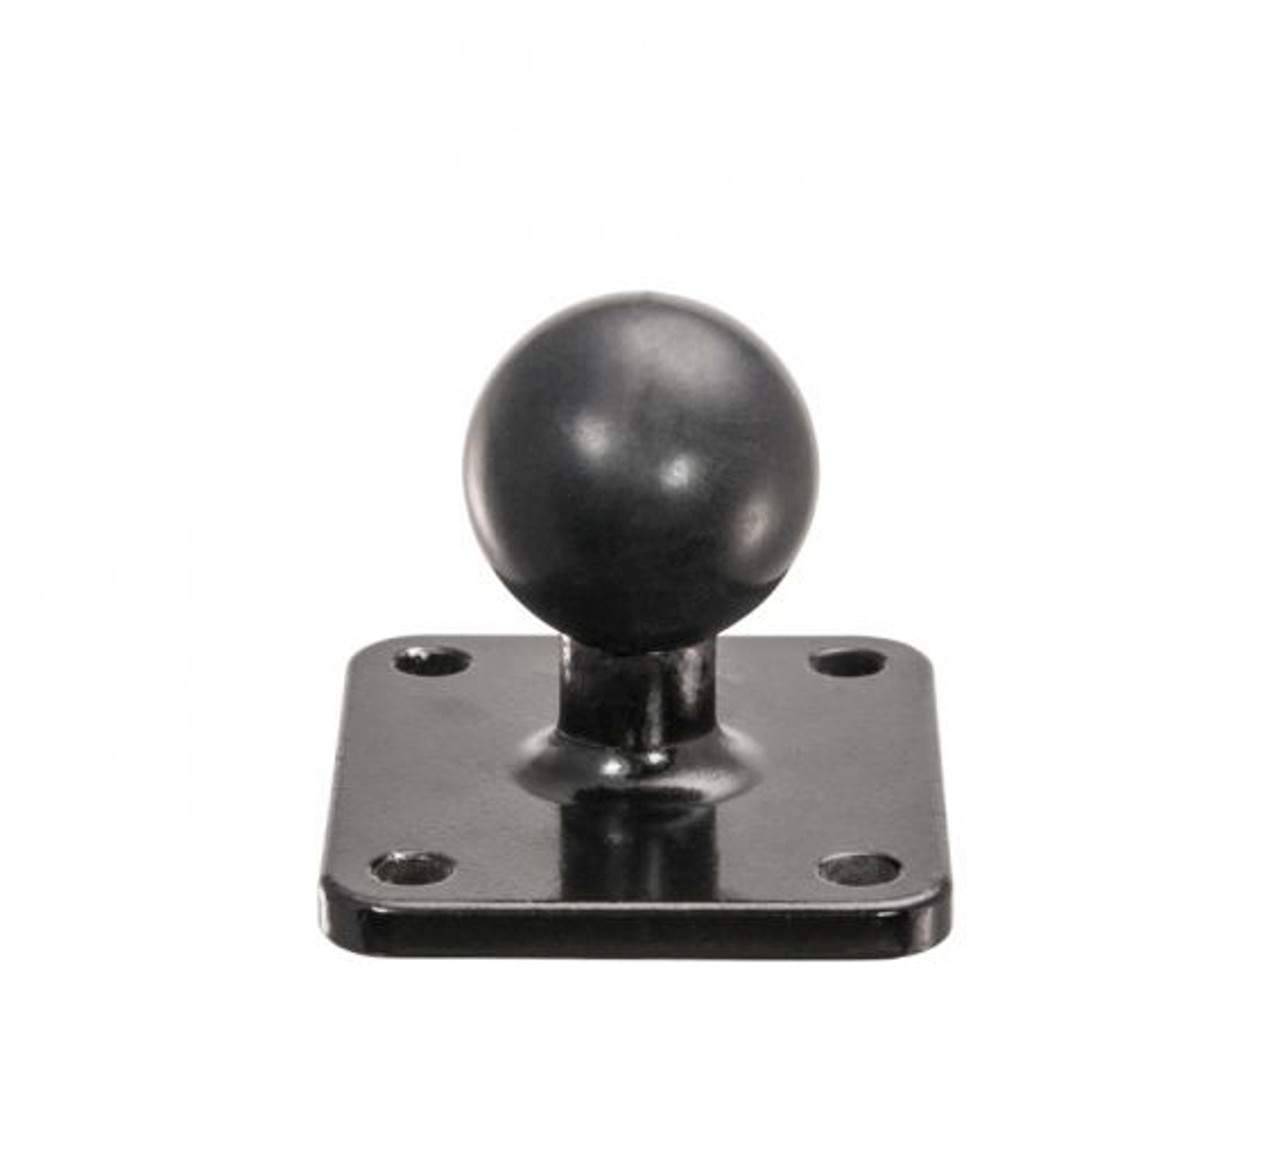 Metal 4-Hole AMPS to 25mm (1 inch) Rubber Ball Adapter - Aluminum Version